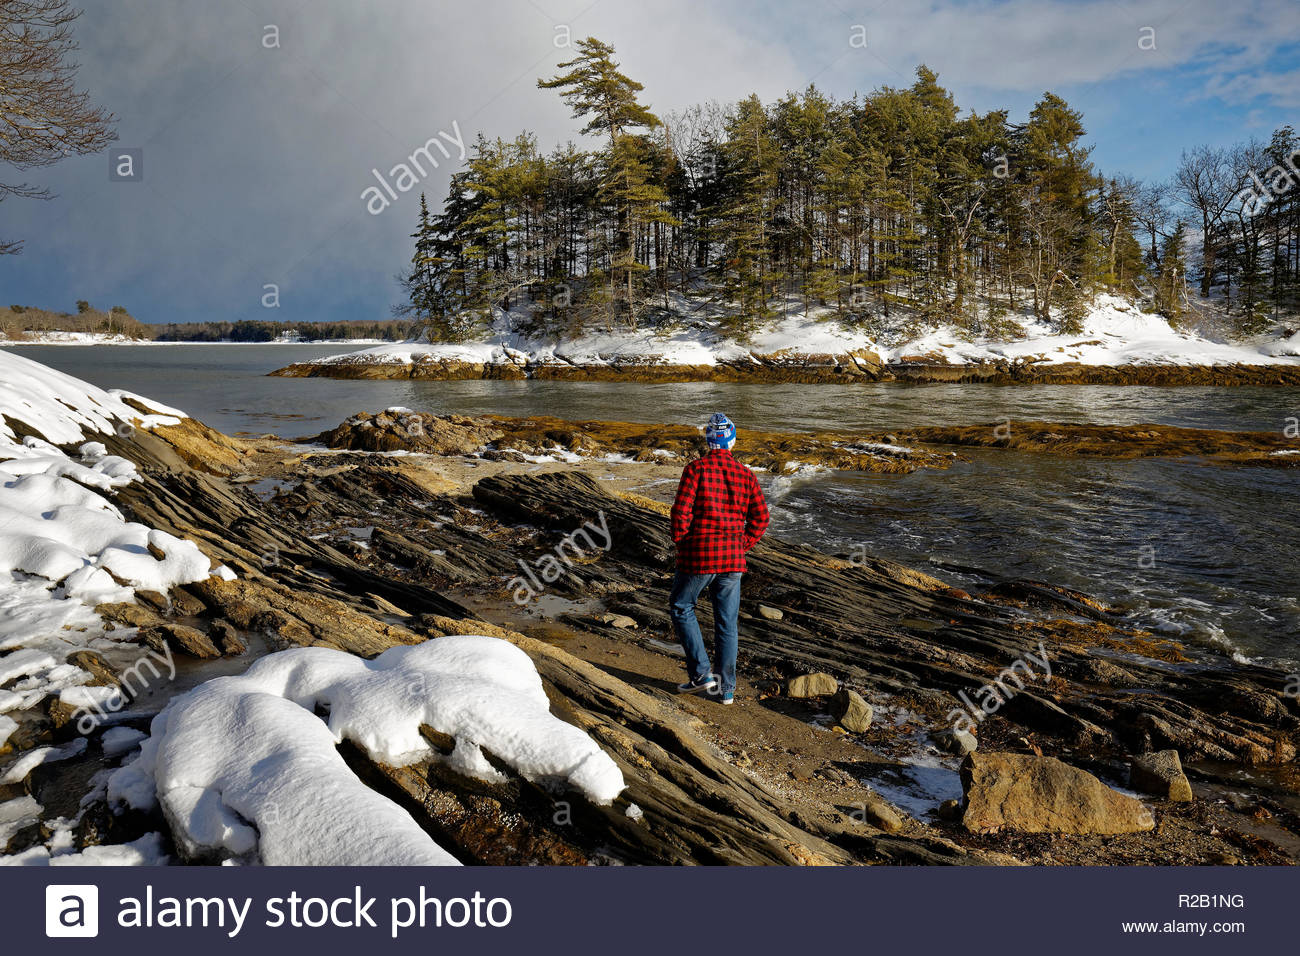 Winter at Wolfe's Neck Woods State Park, Freeport, Maine, USA - Stock Image